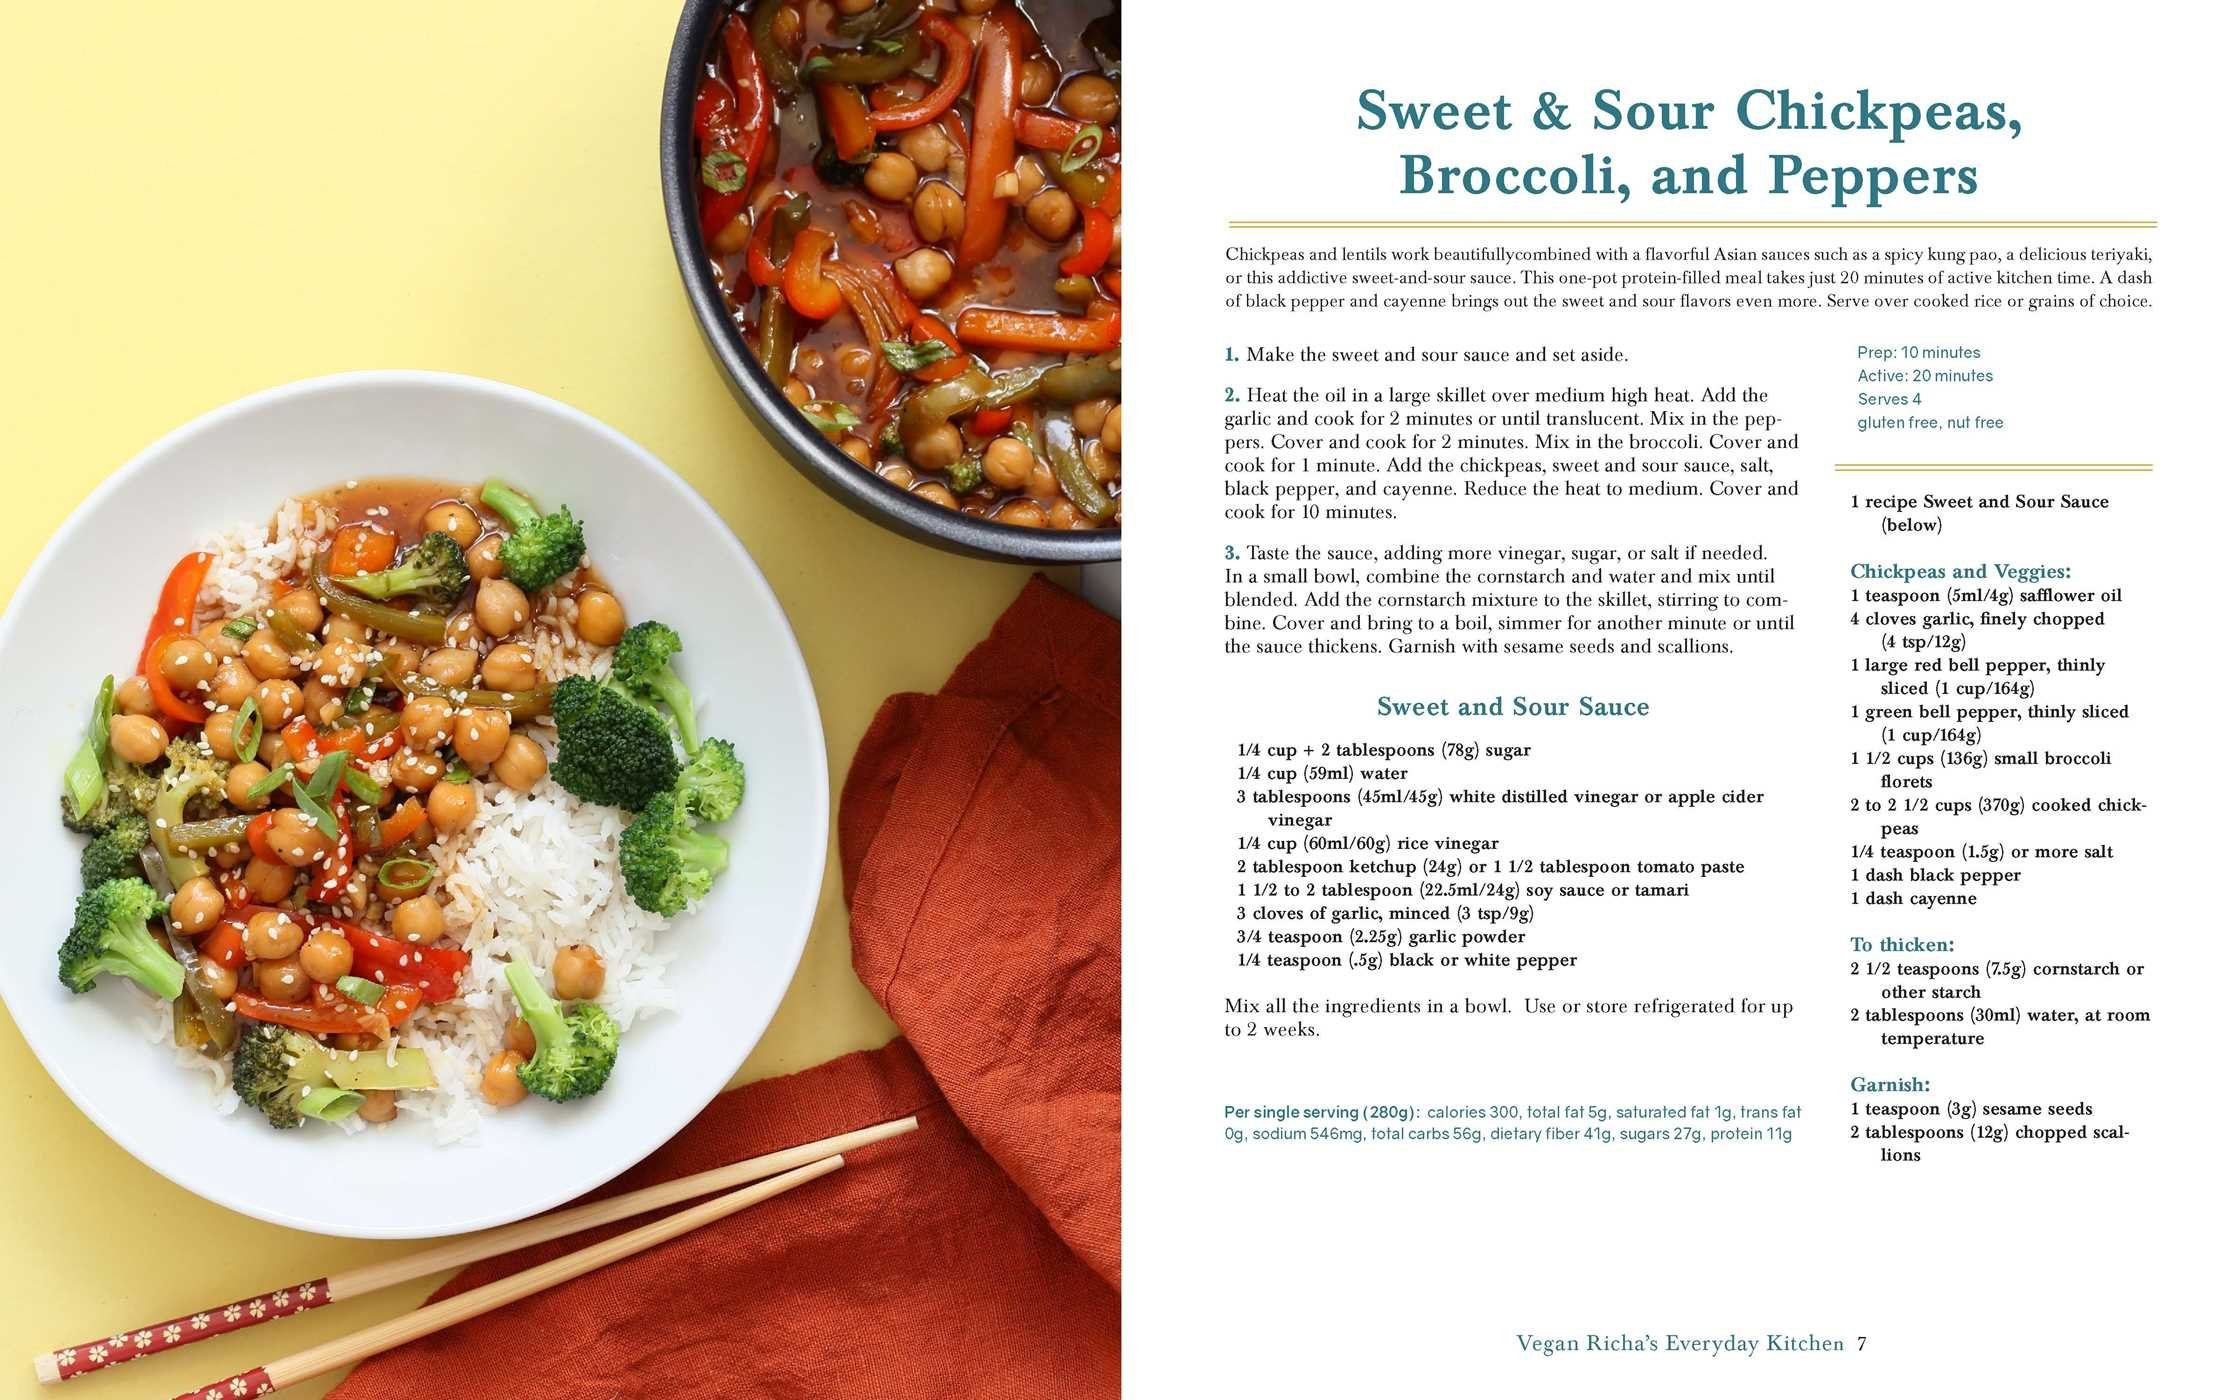 Sweet and Sour Chickpeas from Vegan Richa's Everyday Kitchen